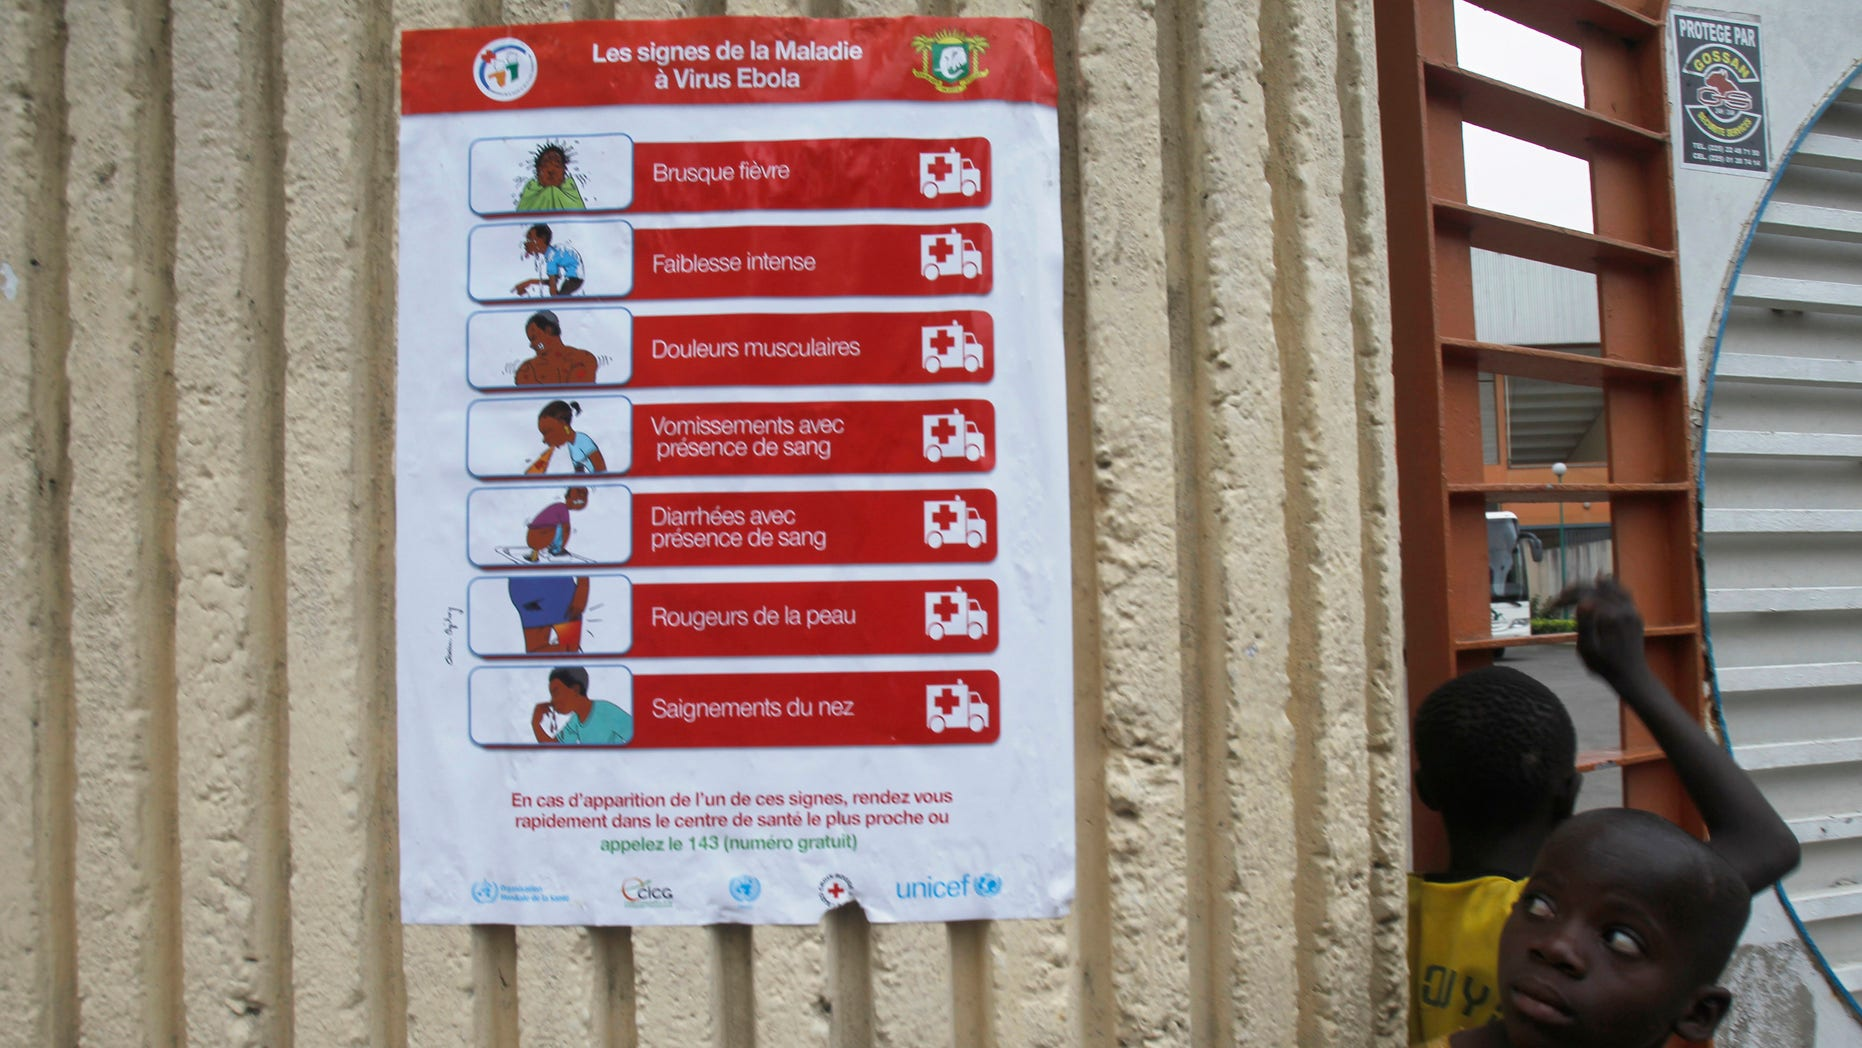 Boys stand next to a poster, pertaining to the Ebola virus, during a training session by Sierra Leone's national soccer team  at the Felix Houphouet Boigny stadium in Abidjan, September 5, 2014. Ivory Coast will host their African Nations Cup qualifier against Ebola-affected Sierra Leone this weekend following a special meeting of the country?s national security council. The decision, announced in a government statement published in local media on Tuesday, comes one week after the government said it would not allow the match to go ahead, citing concerns over a possible Ebola outbreak. REUTERS/Luc Gnago (IVORY COAST - Tags: SPORT SOCCER HEALTH) - RTR4552S